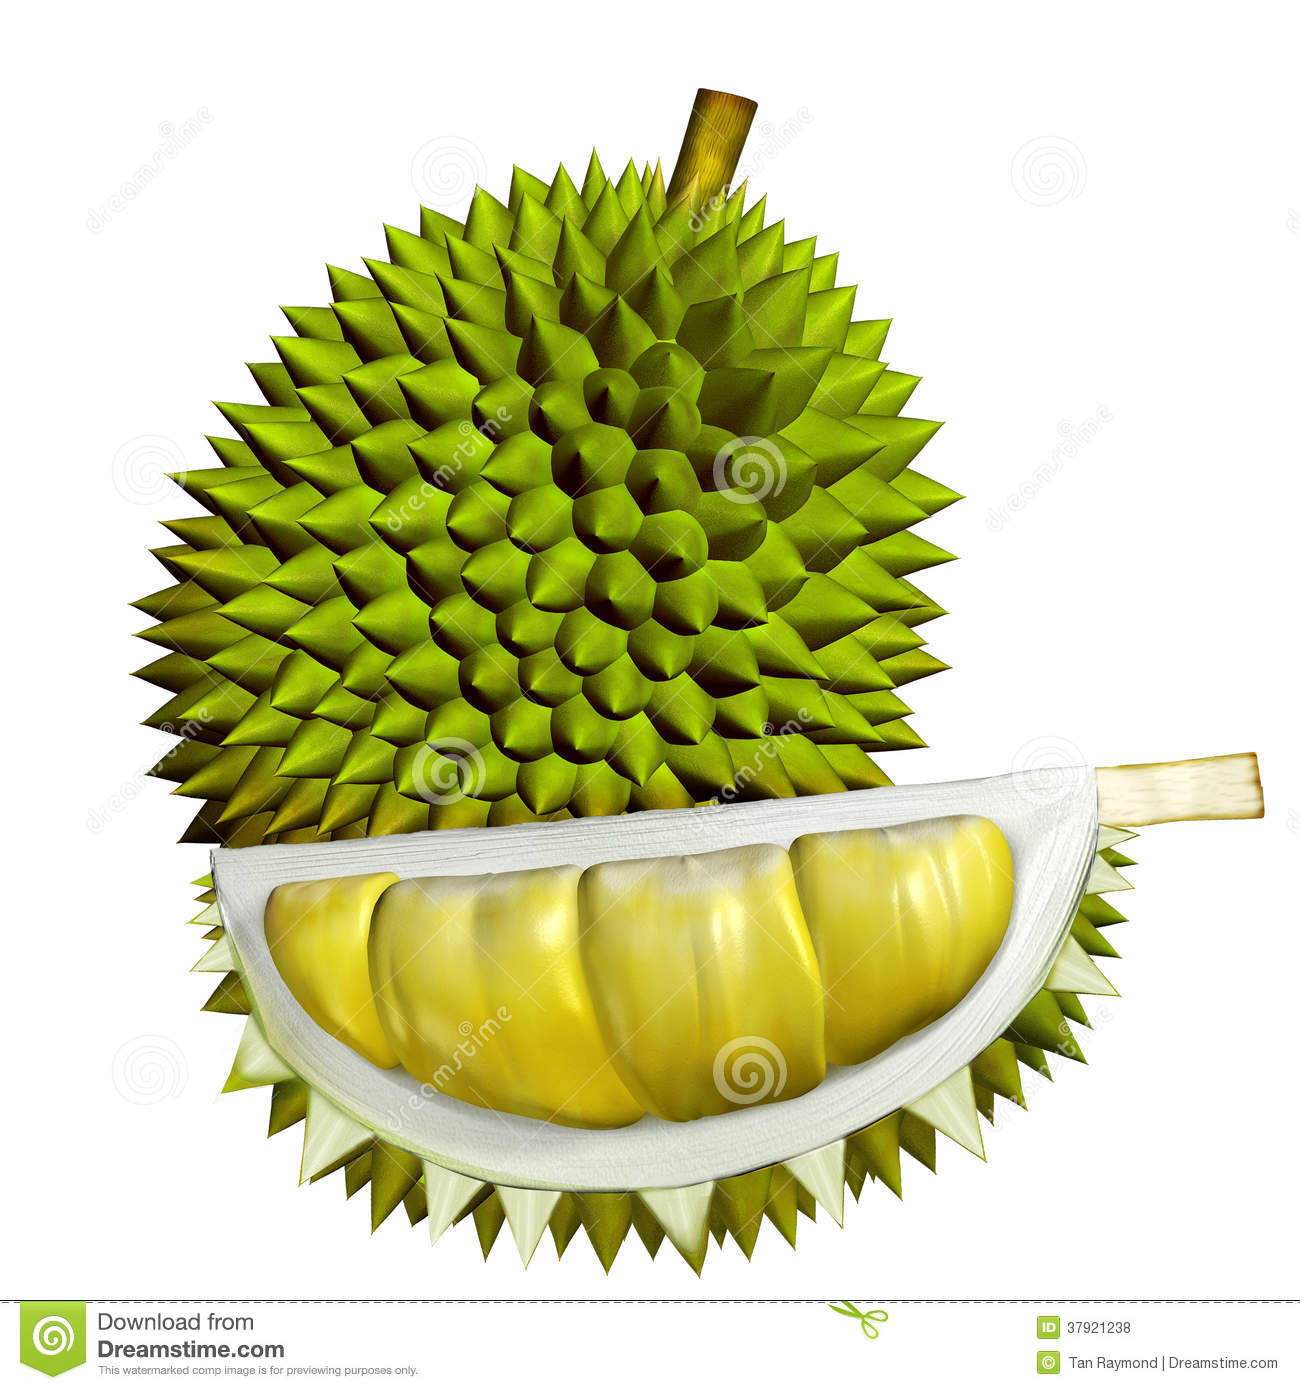 durian fruits stock illustrations 1 187 durian fruits stock illustrations vectors clipart dreamstime dreamstime com